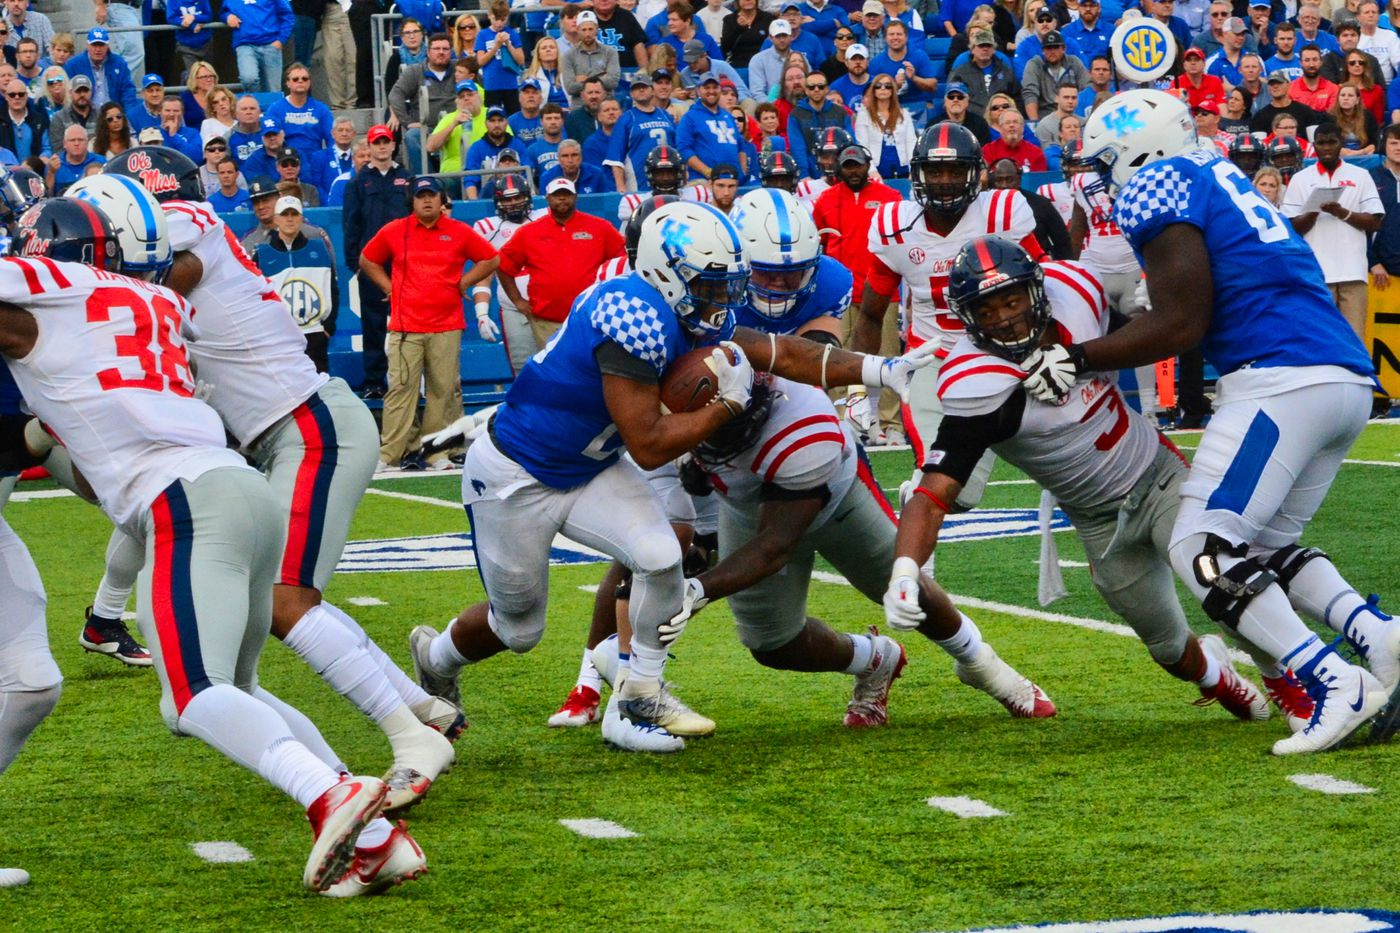 Kentucky Football Vs Ole Miss Rebels 2020 Game Time Tv Channel Live Online Stream Odds Replay More A Sea Of Blue